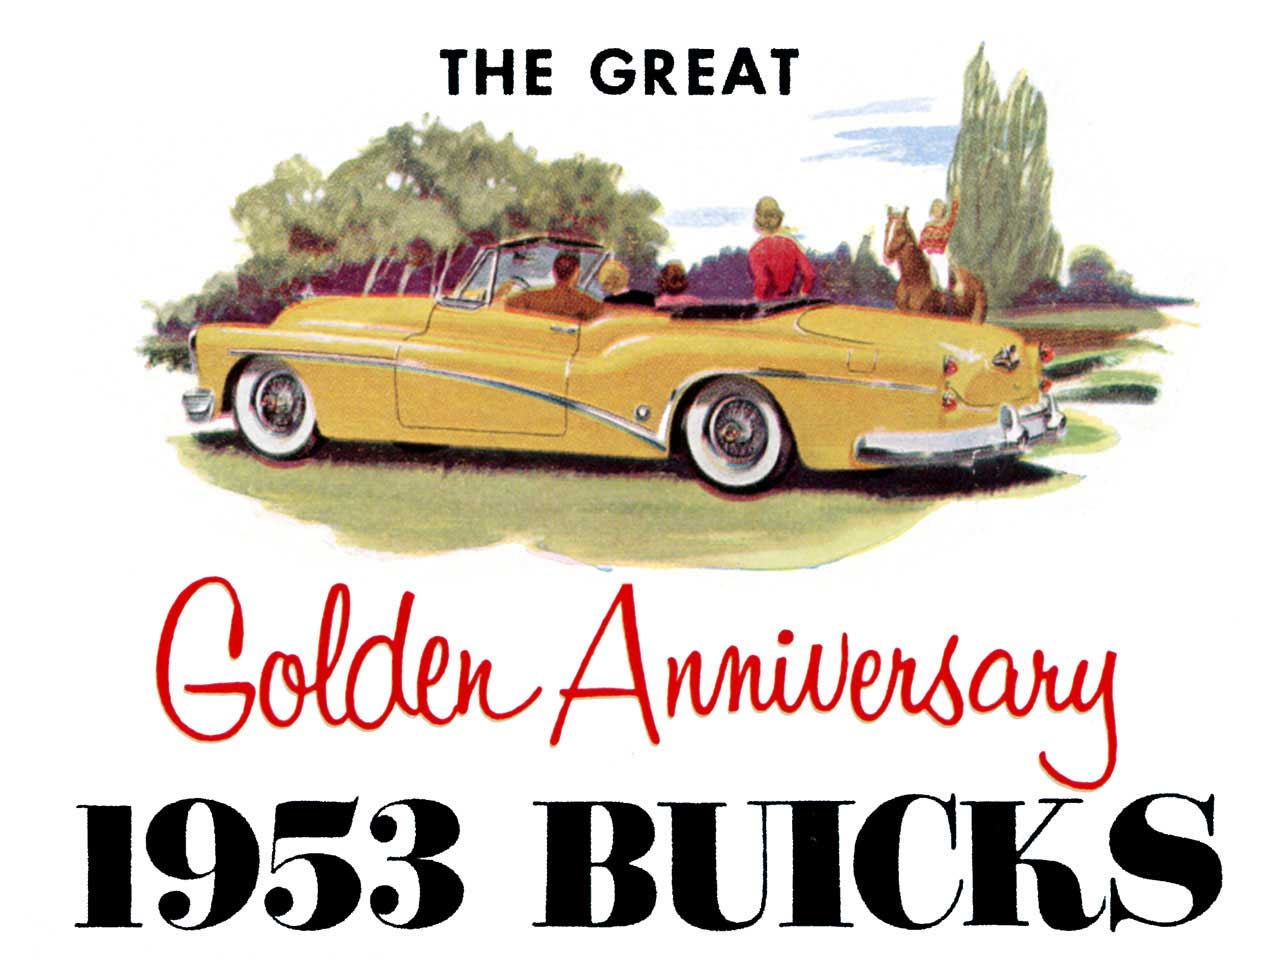 1953 Buick - The Great Golden Anniversary 1953 Buicks